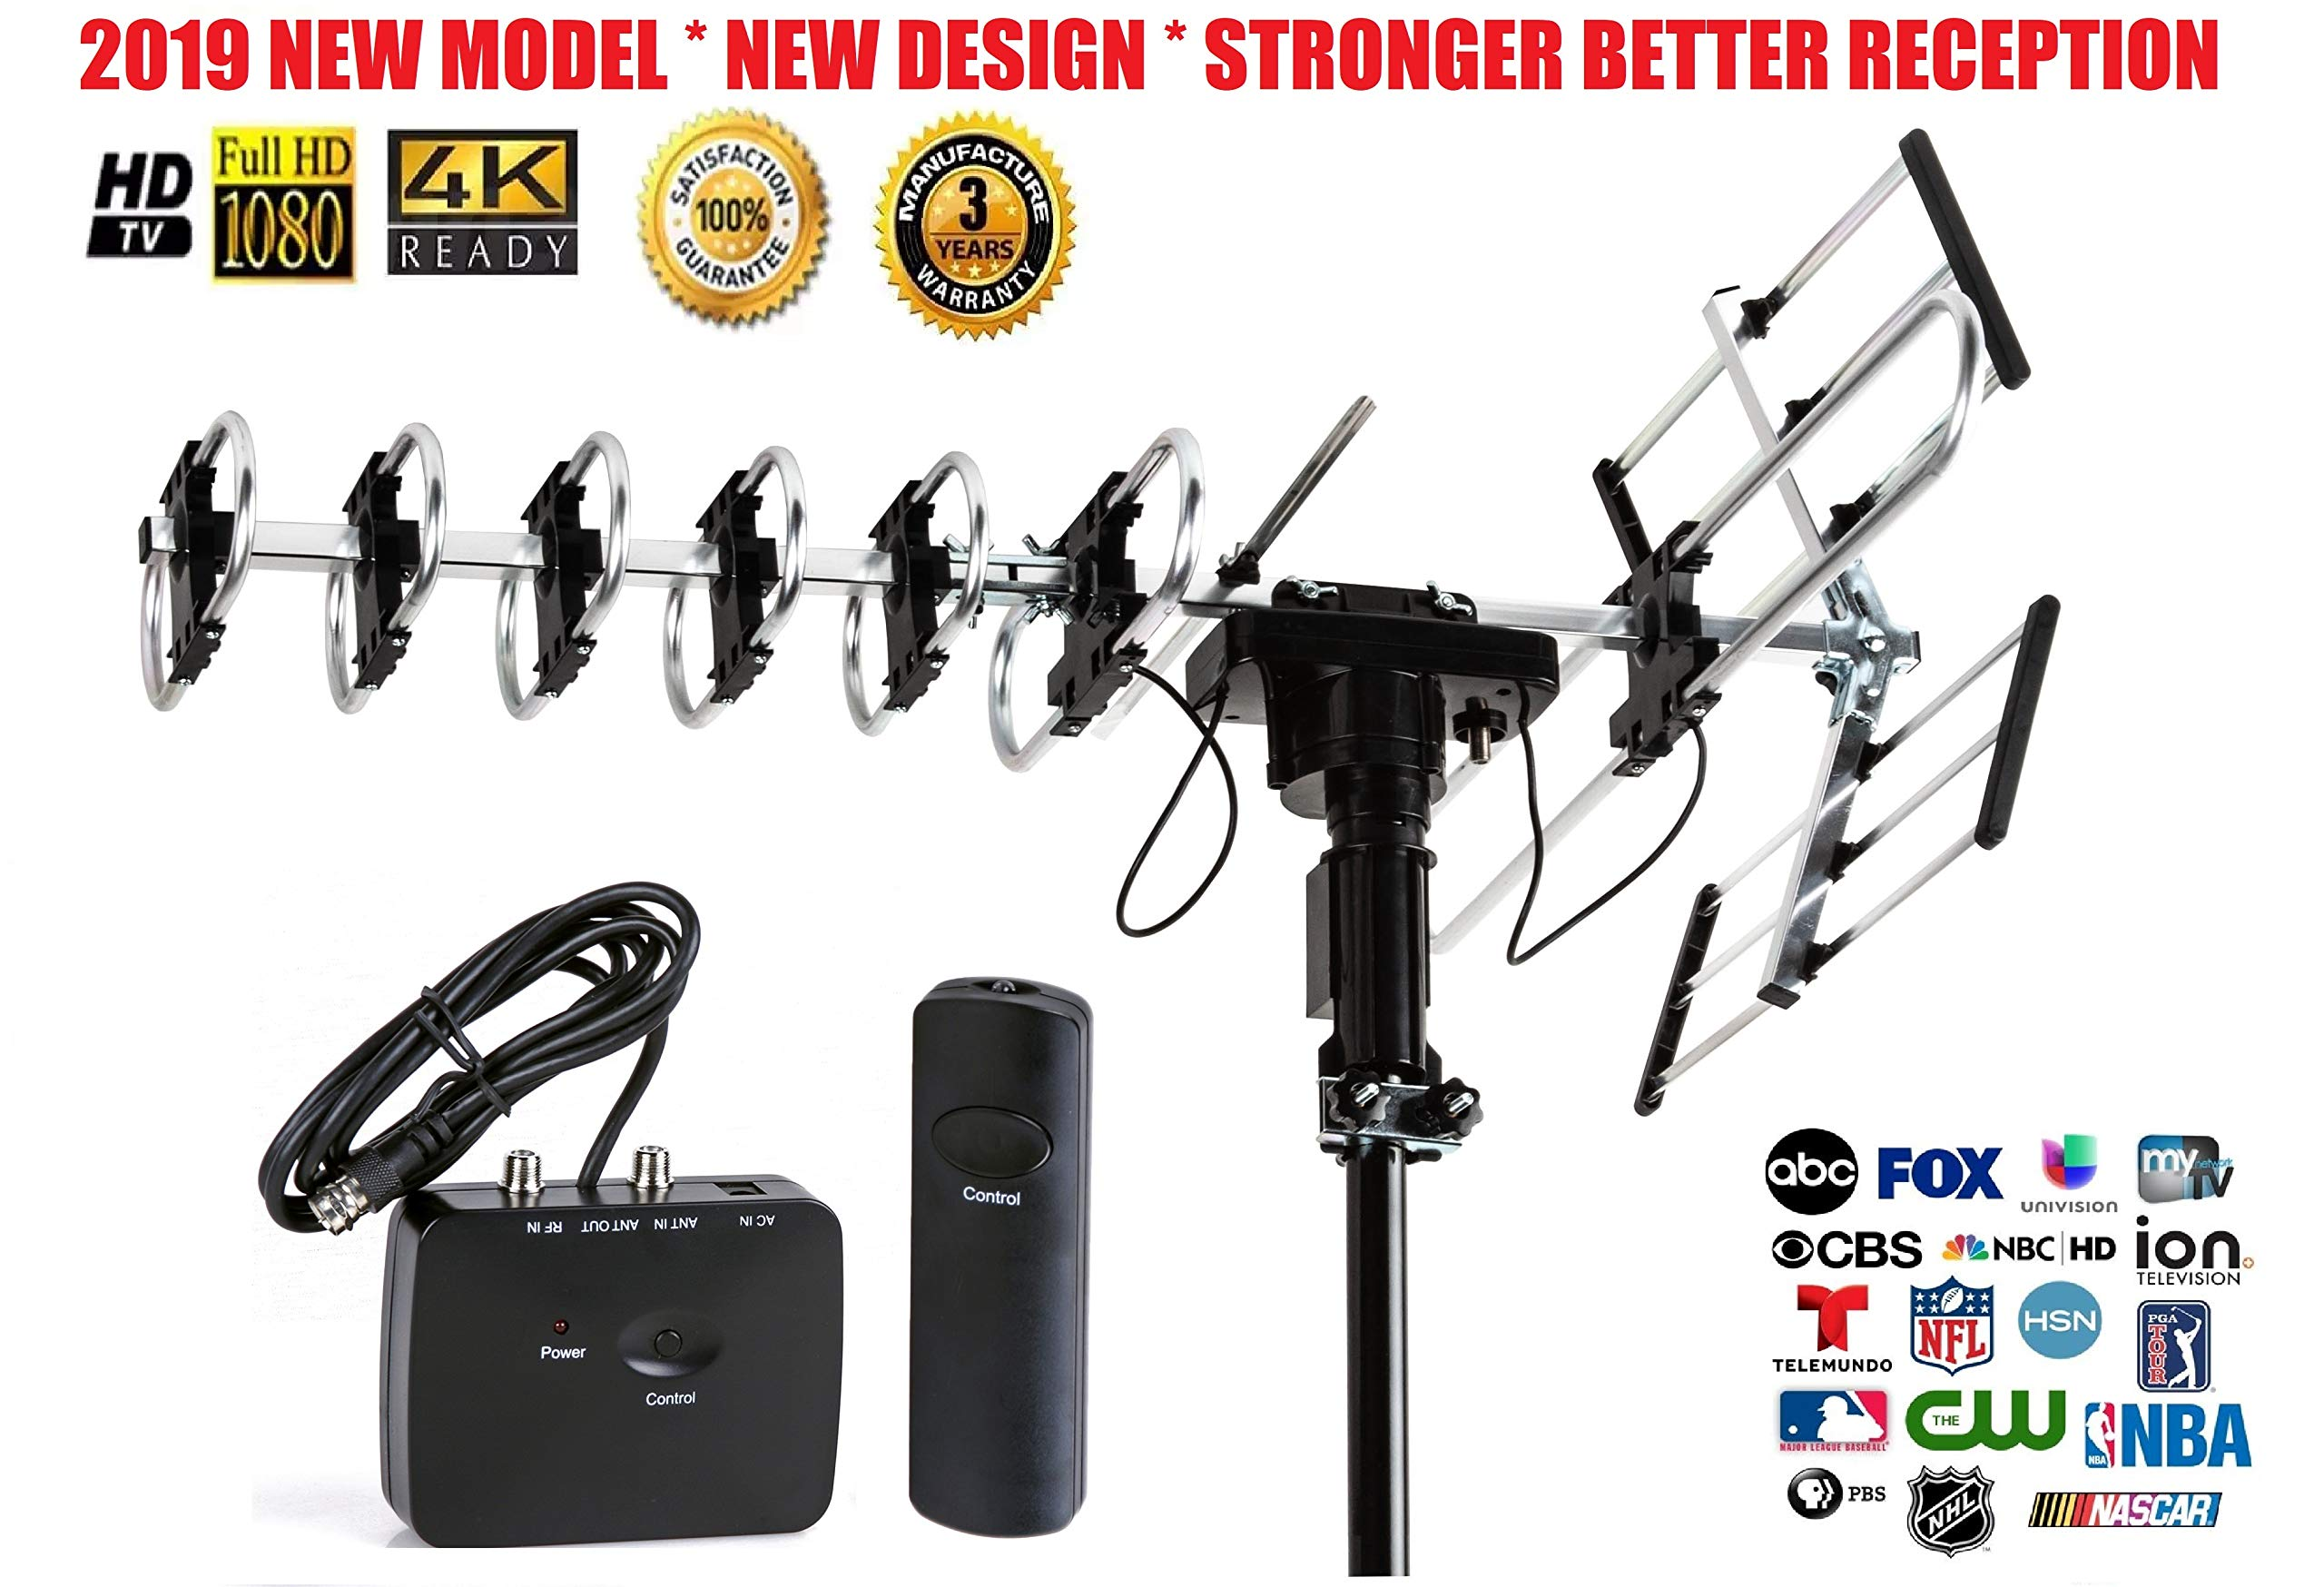 FiveStar Outdoor HD TV Antenna 2019 Newest Model Up to 200 Miles Long Range with Motorized 360 Degree Rotation, UHF/VHF/FM Radio with Infrared Remote Control Advanced Design by Five Star